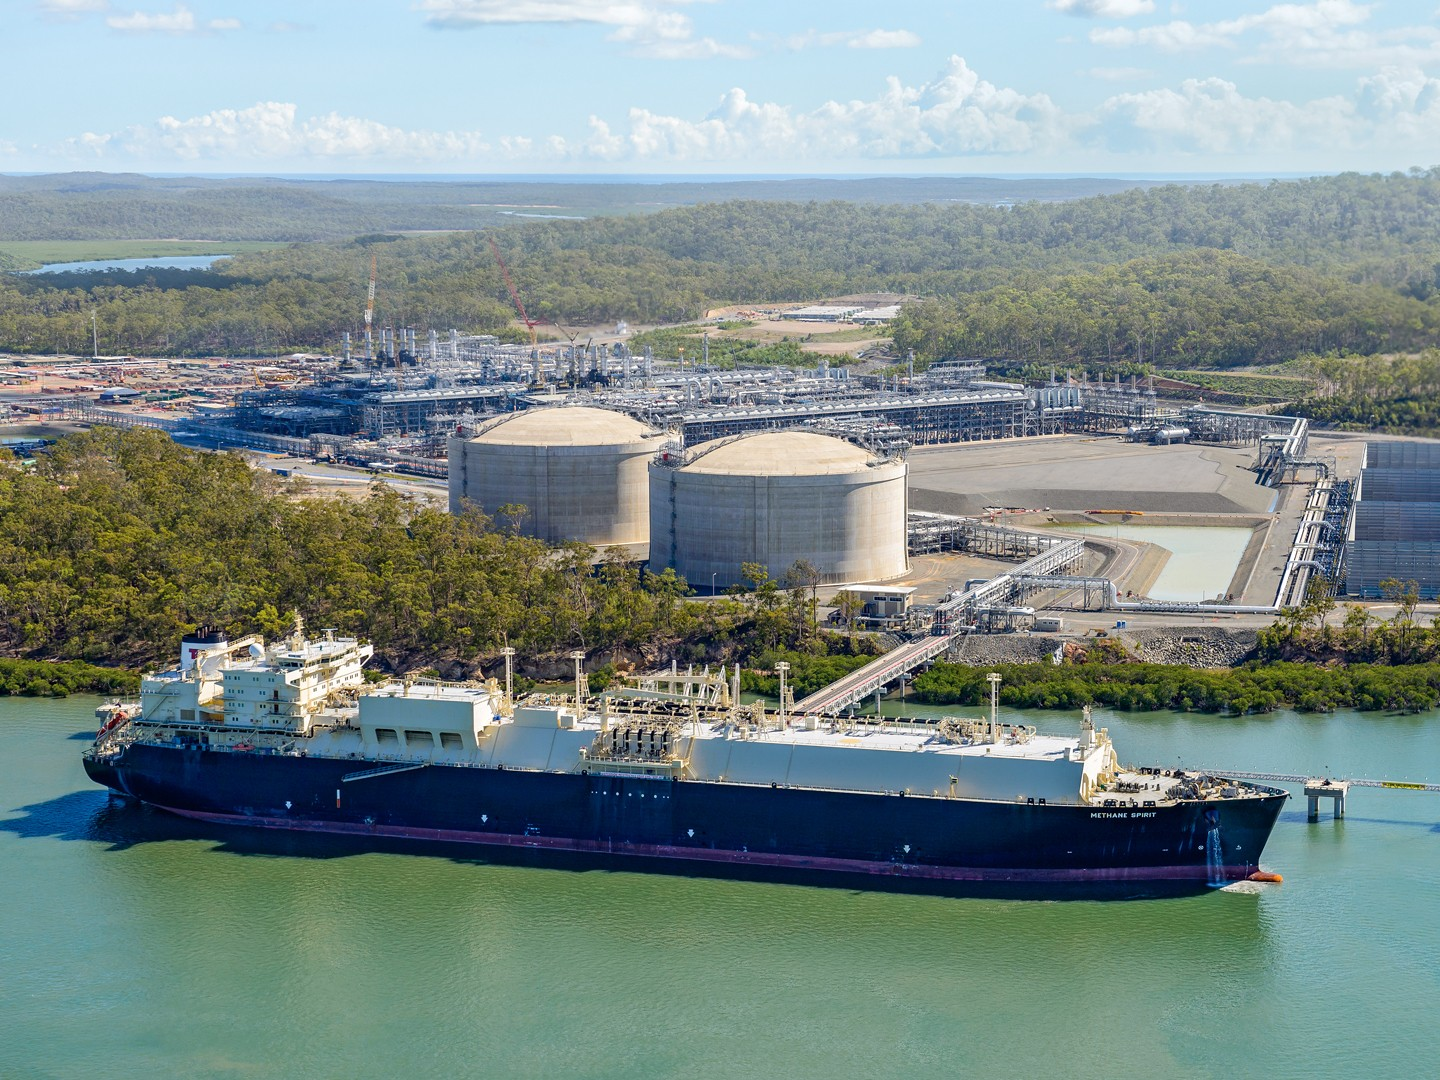 LNG ship at dock in foreground with tanks and facility in background surrounded by trees.